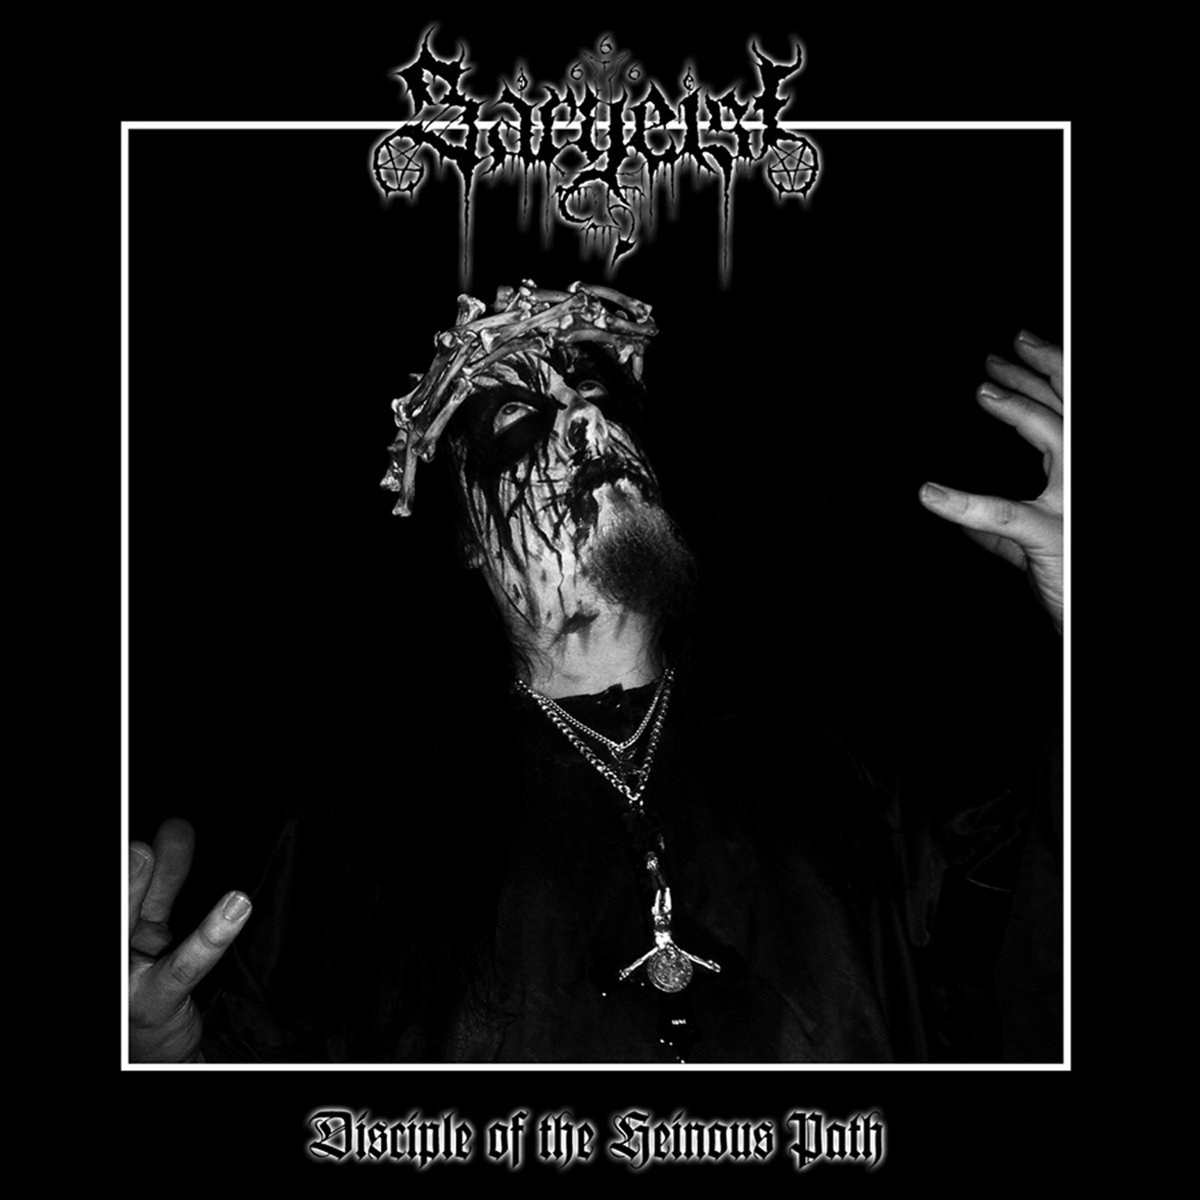 Review for Sargeist - Disciple of the Heinous Path